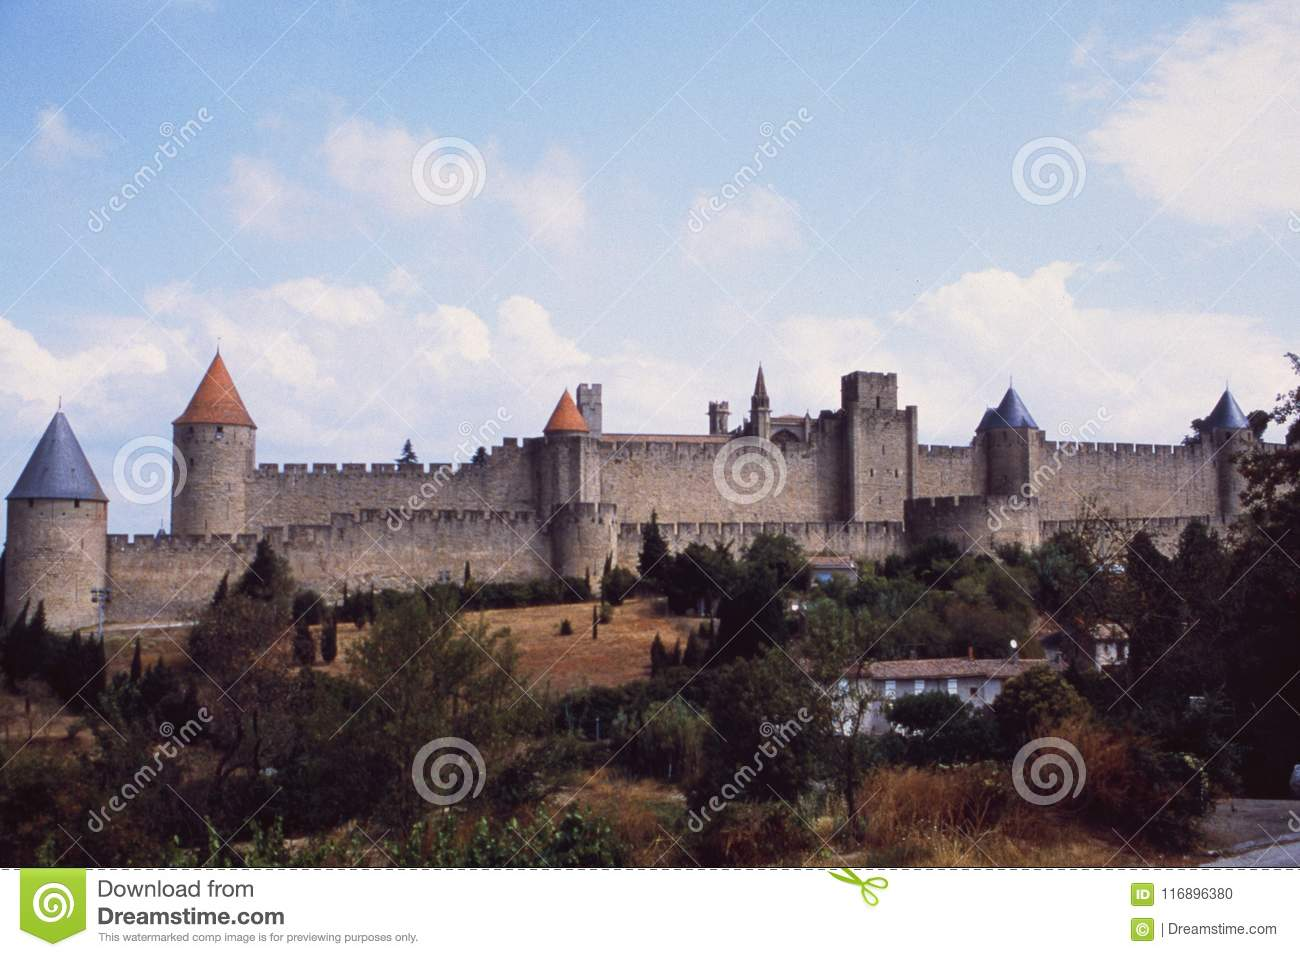 Frankreich: Chateau und Fort Carcassogne in Languedoc-Rousillon